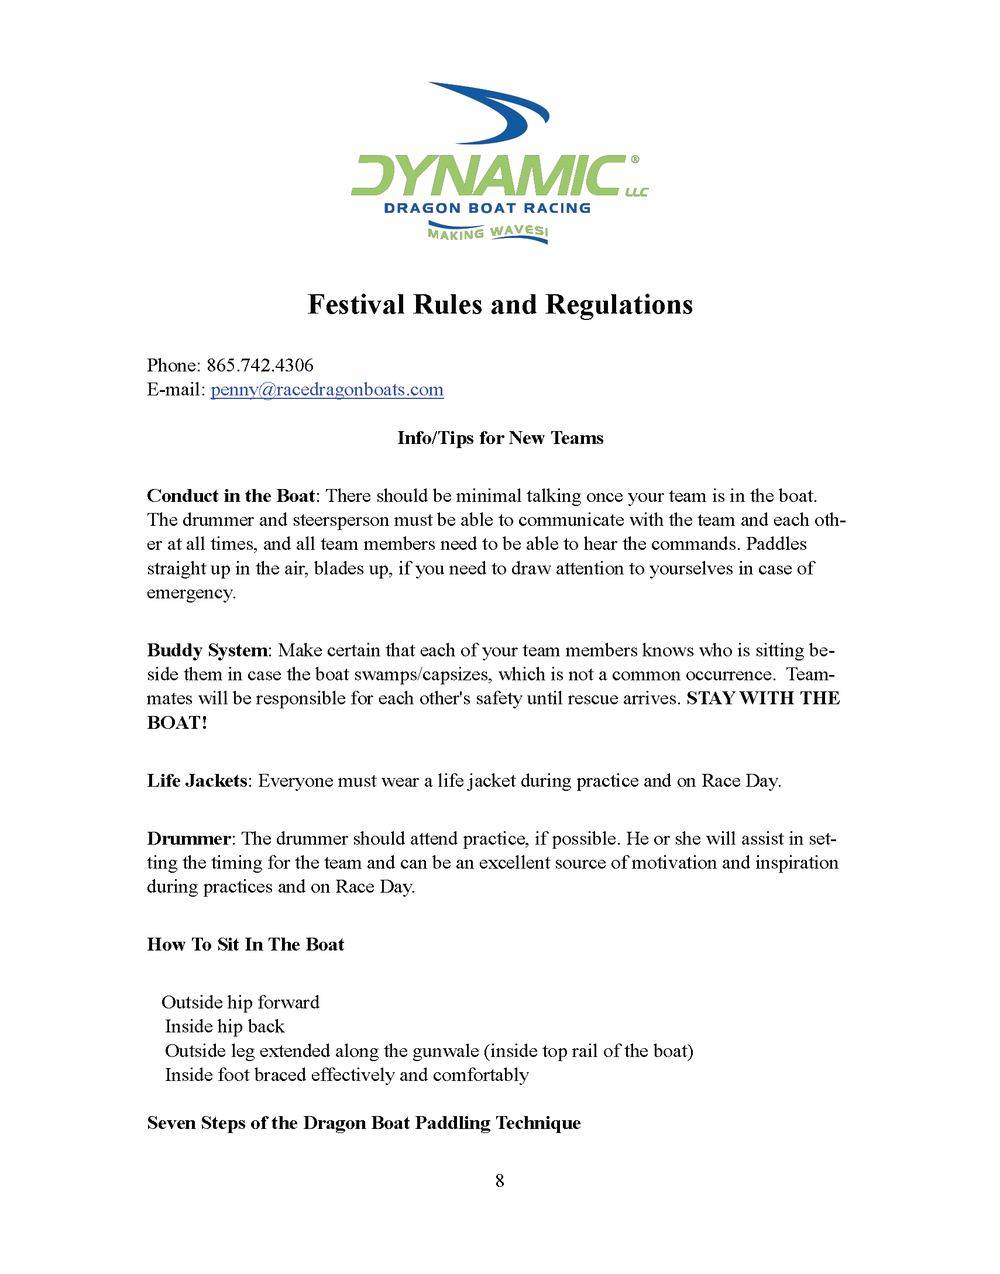 Dynamic_Festival_RulesRegulations_2019_Page_08.png